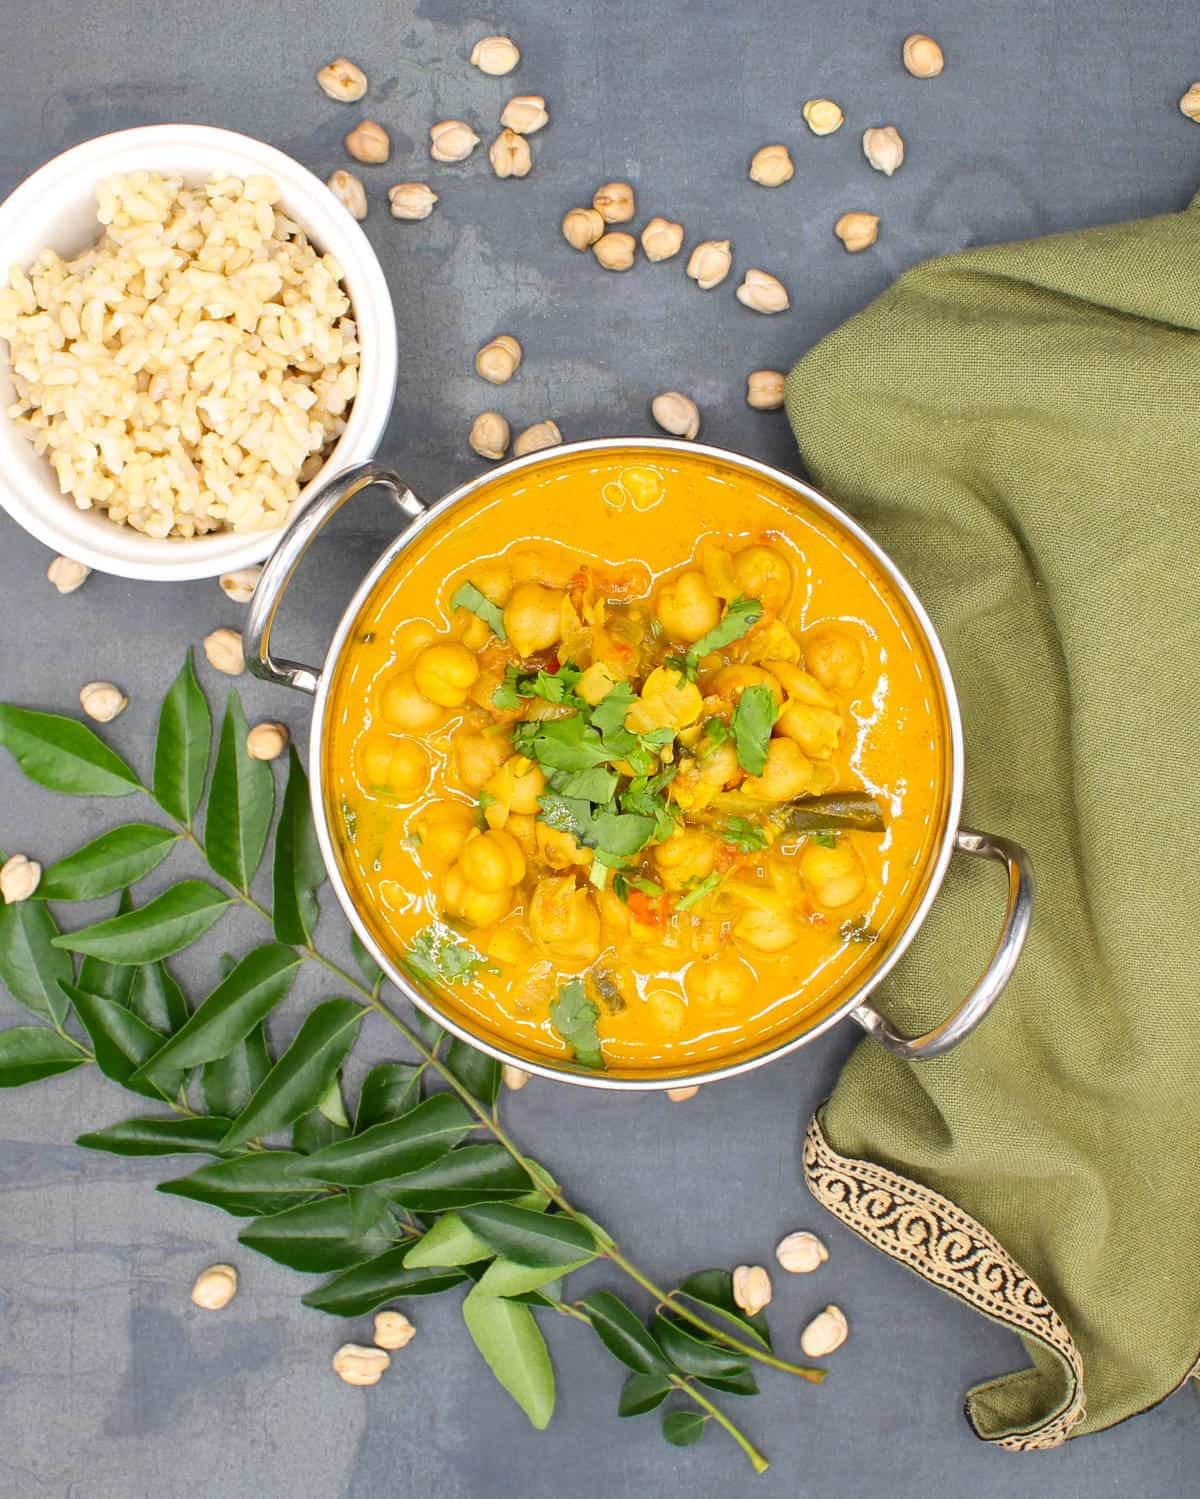 Overhead shot of chickpea curry, south Indian style, in a karahi with brown rice on the side and chickpeas and curry leaves scattered around and a green napkin.